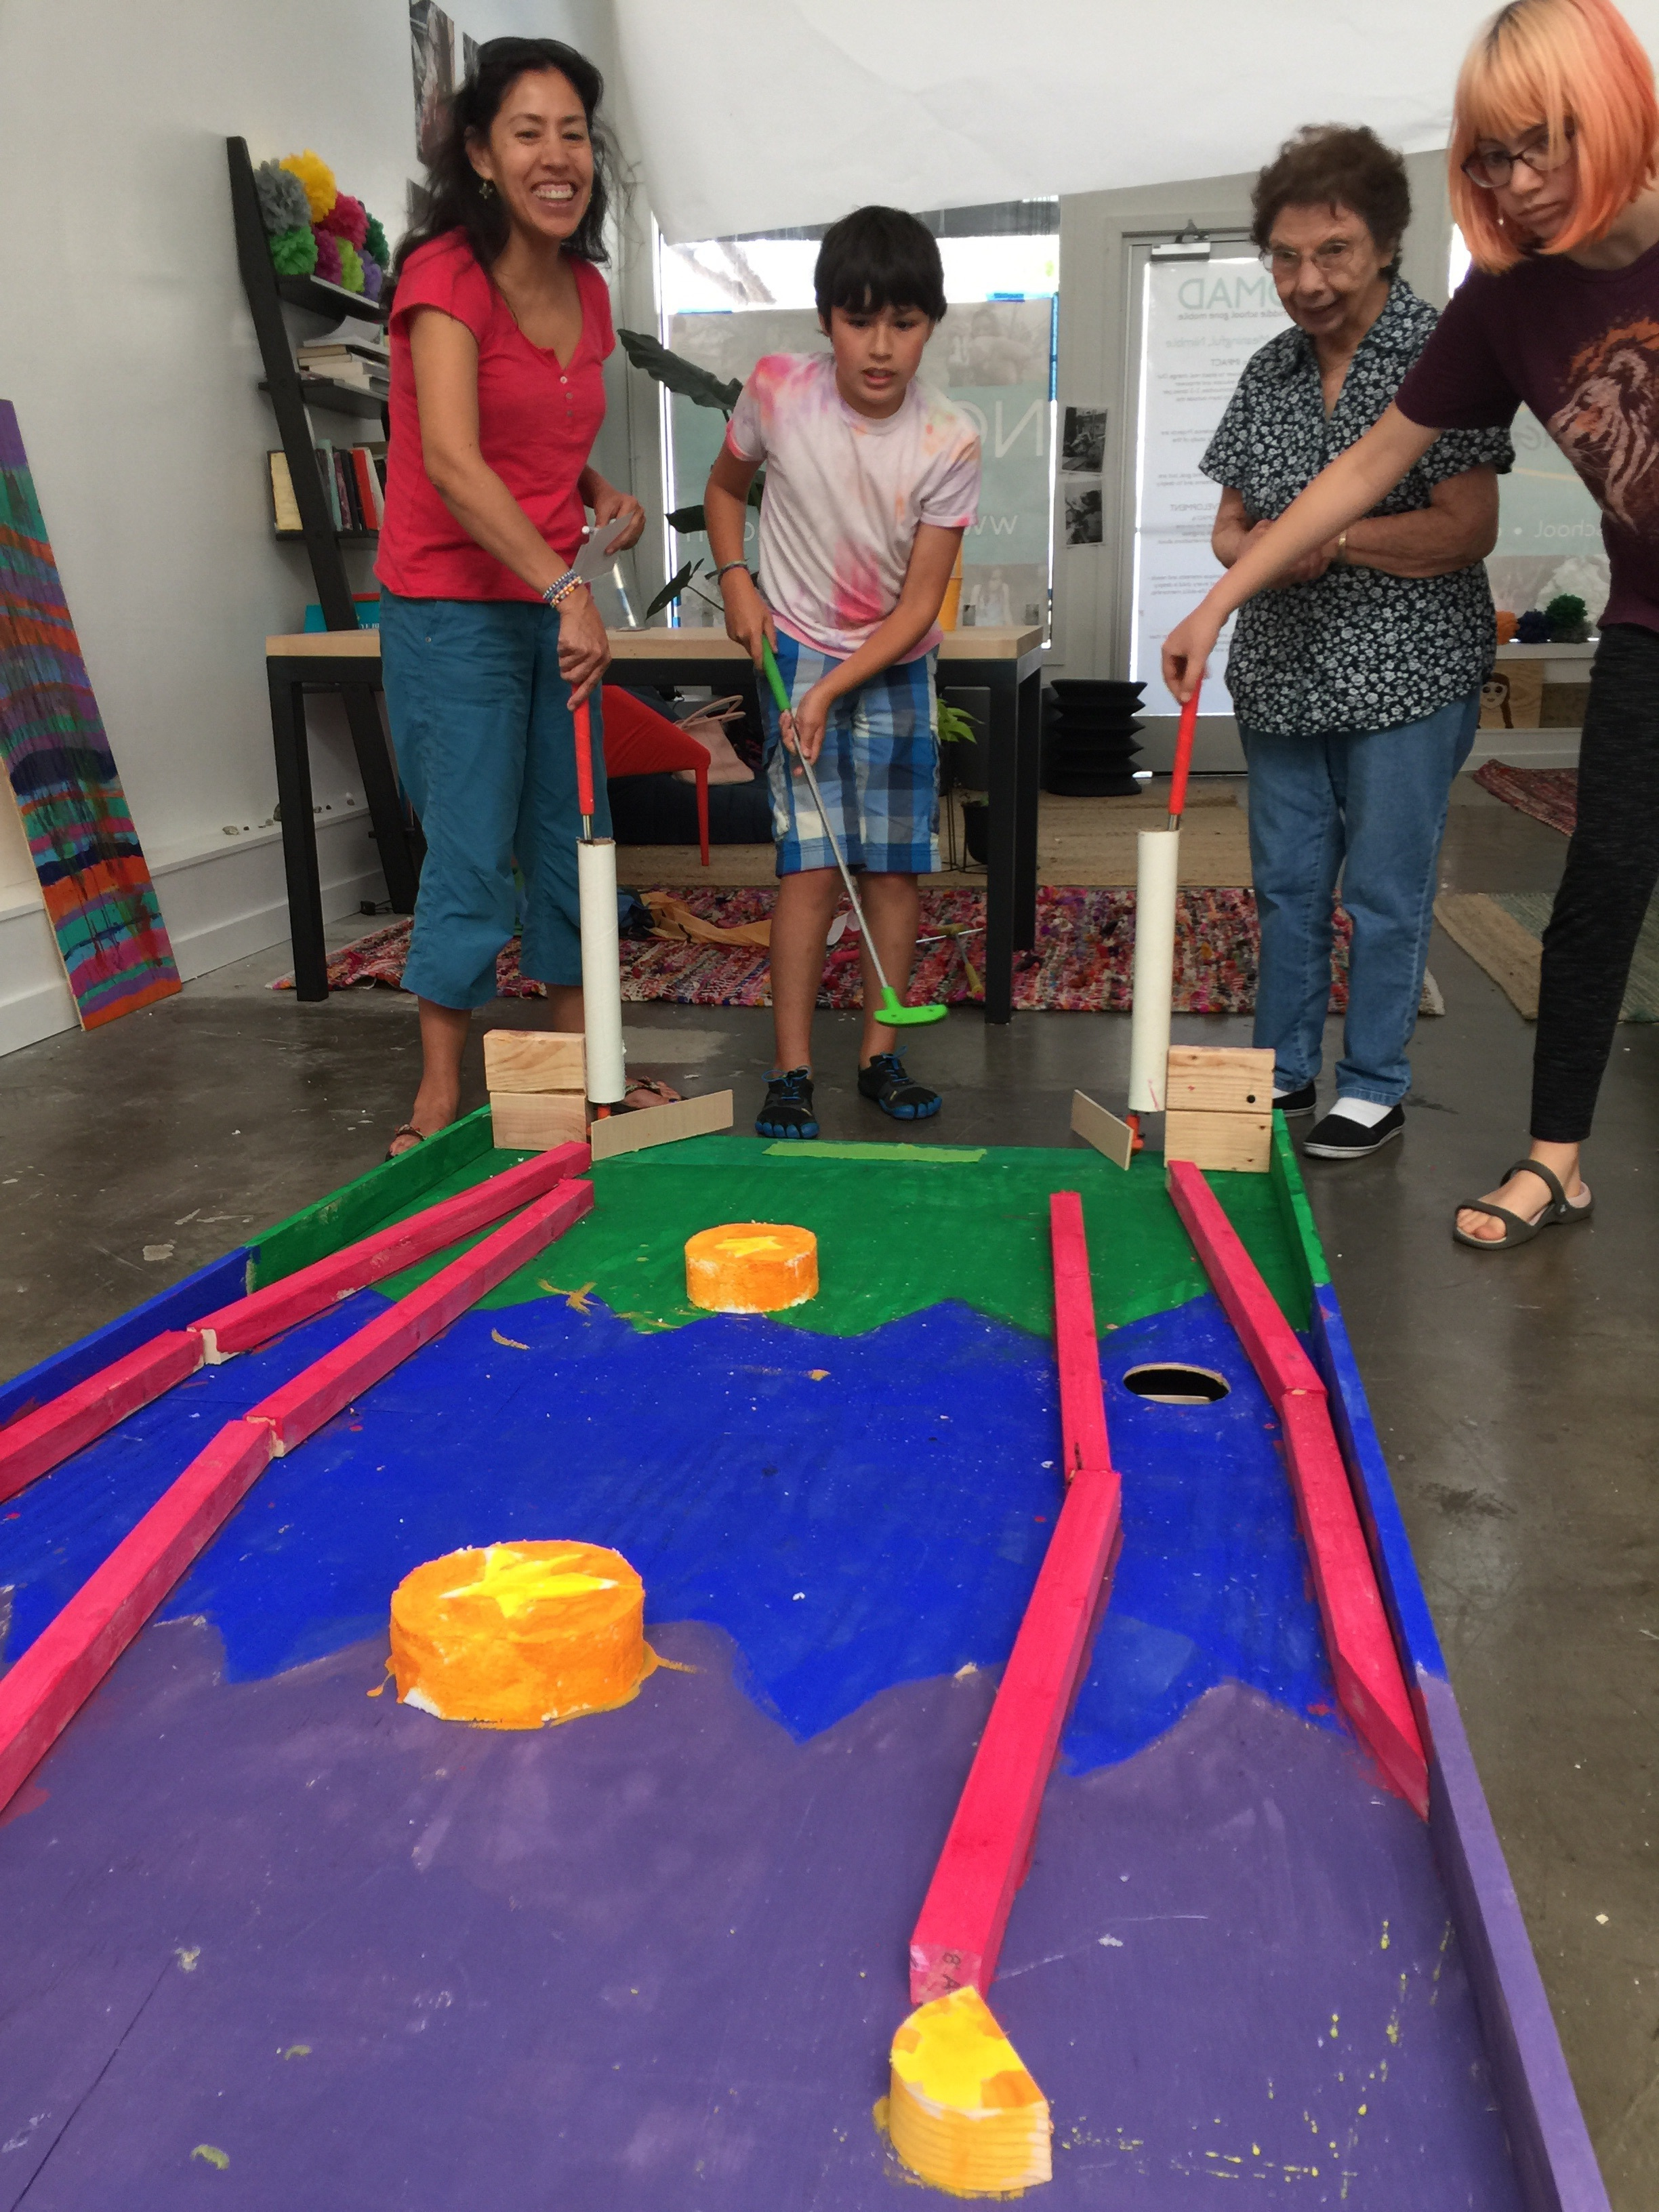 Alex's pin-pall hole was a hit because it was a challenge to navigate the many bumpers and tracks with the putters-turned-flippers at the base. You'll notice the stragically placed hole which required the player to calculate angles and speed.